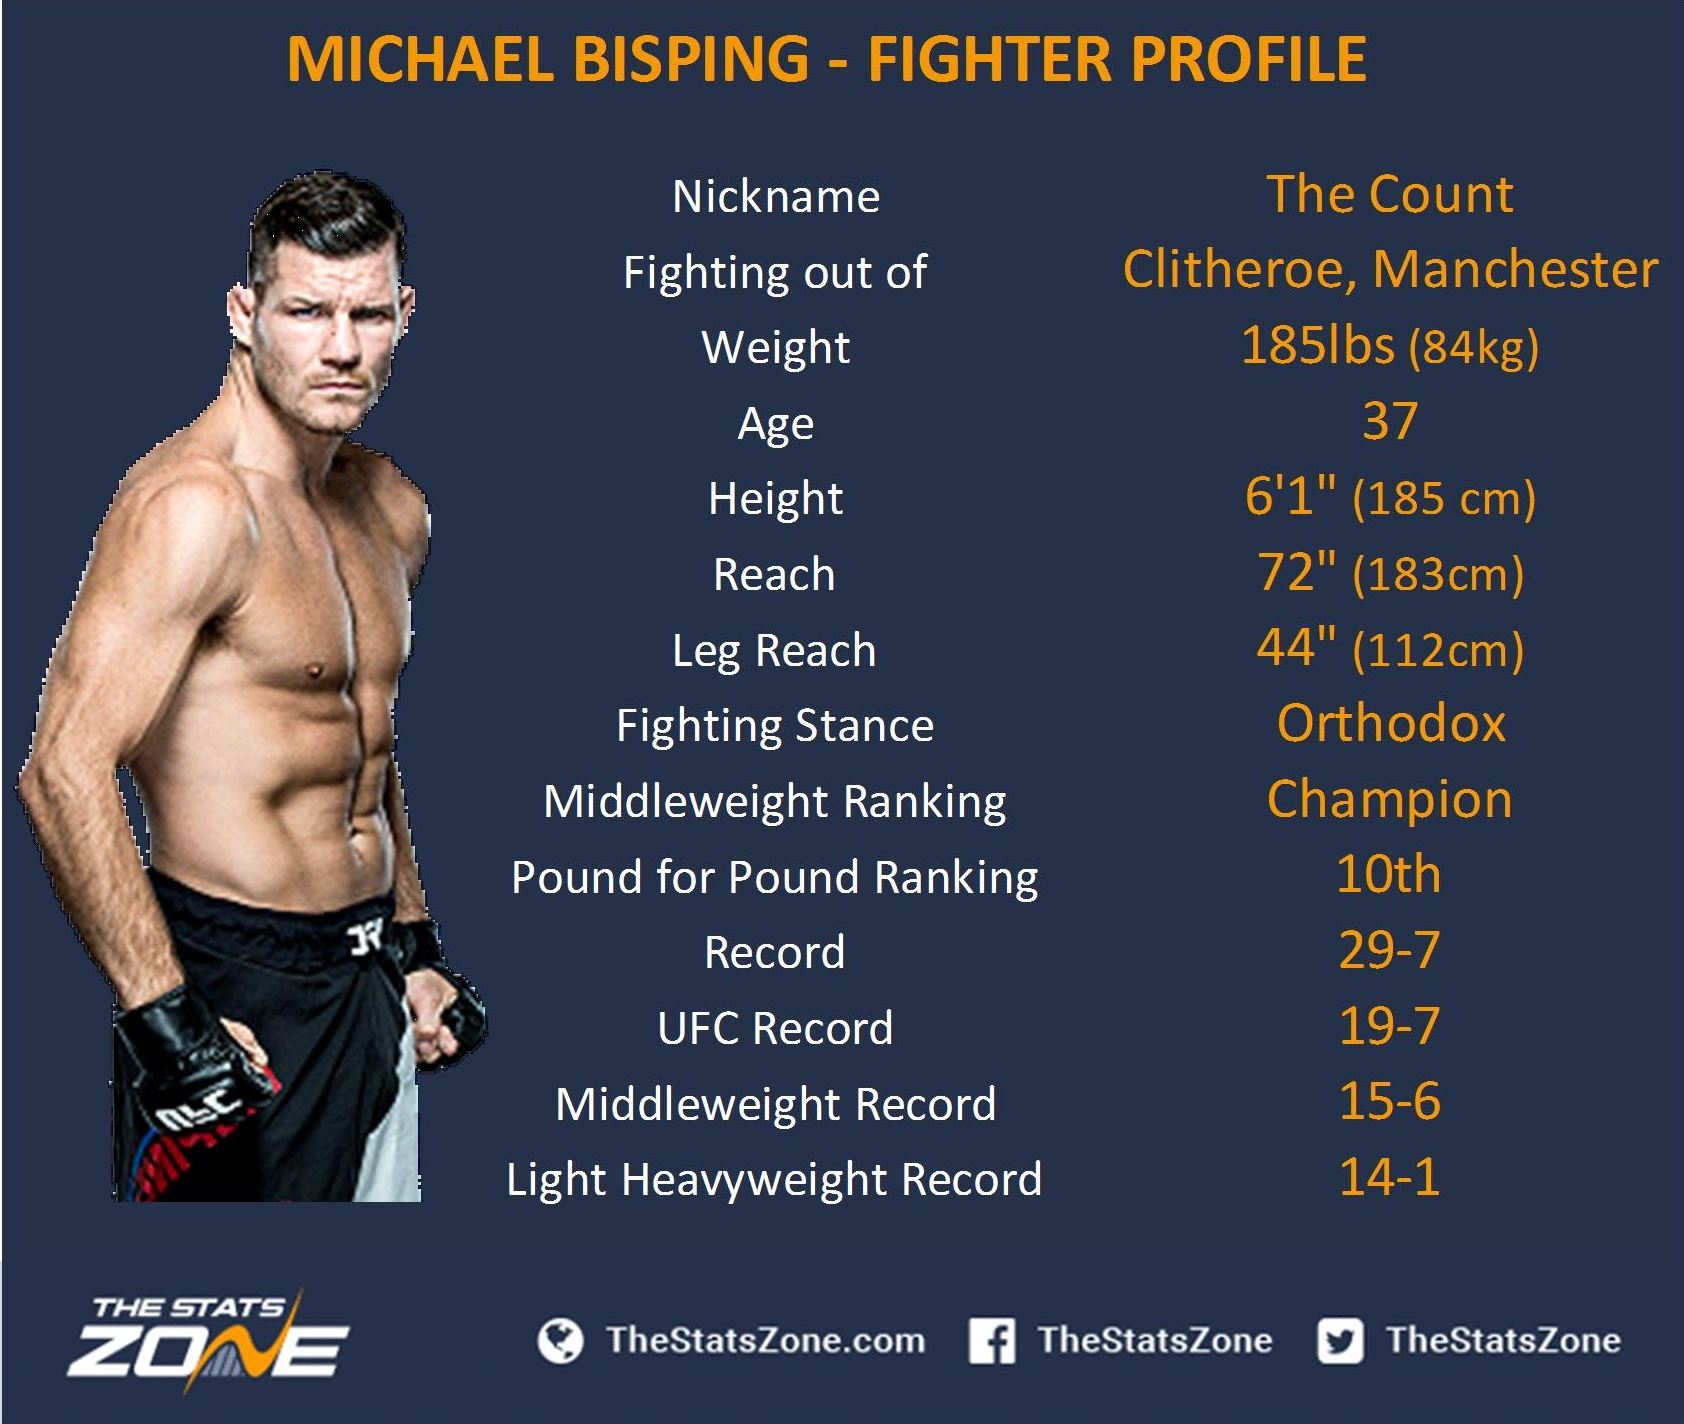 Michael Bisping info